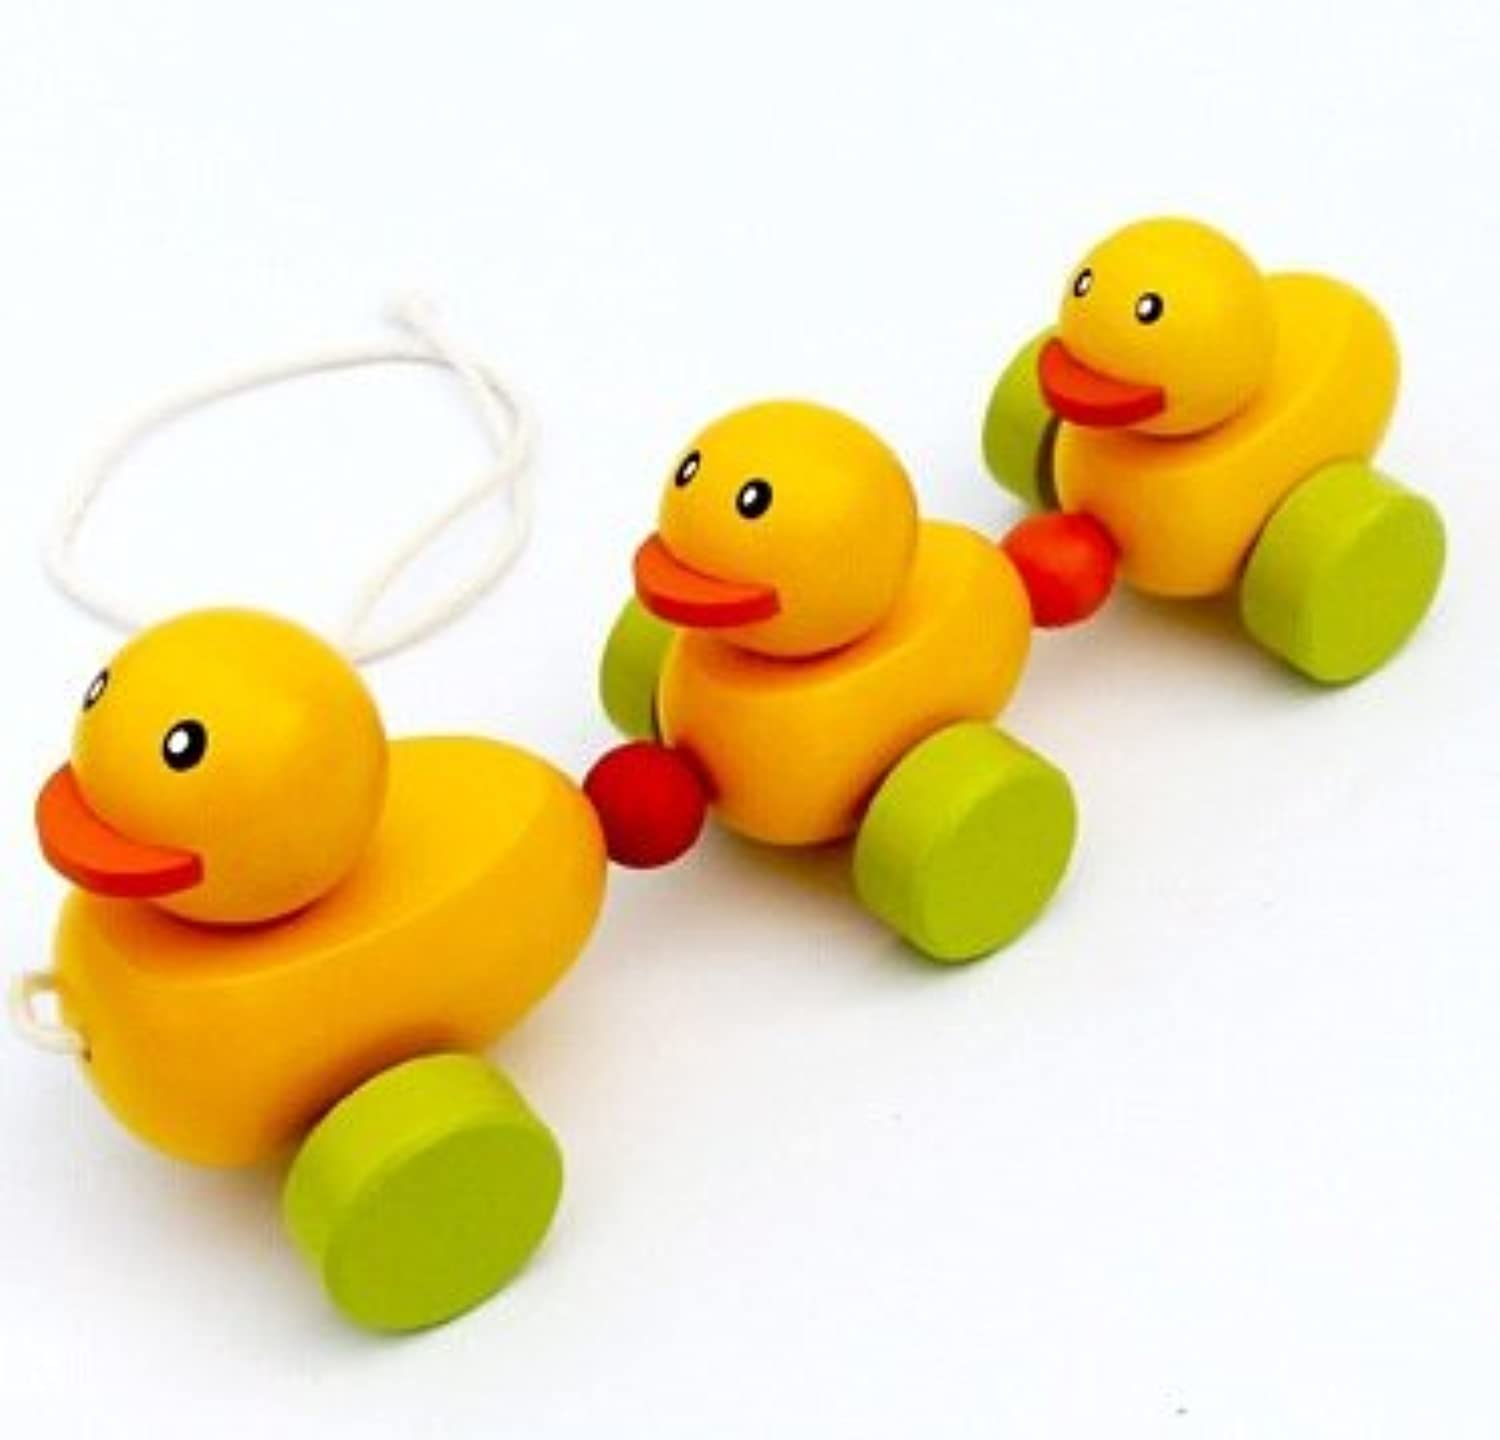 Wooden ToysドラッグYellow DuckトラクターウォーカーToys for Children